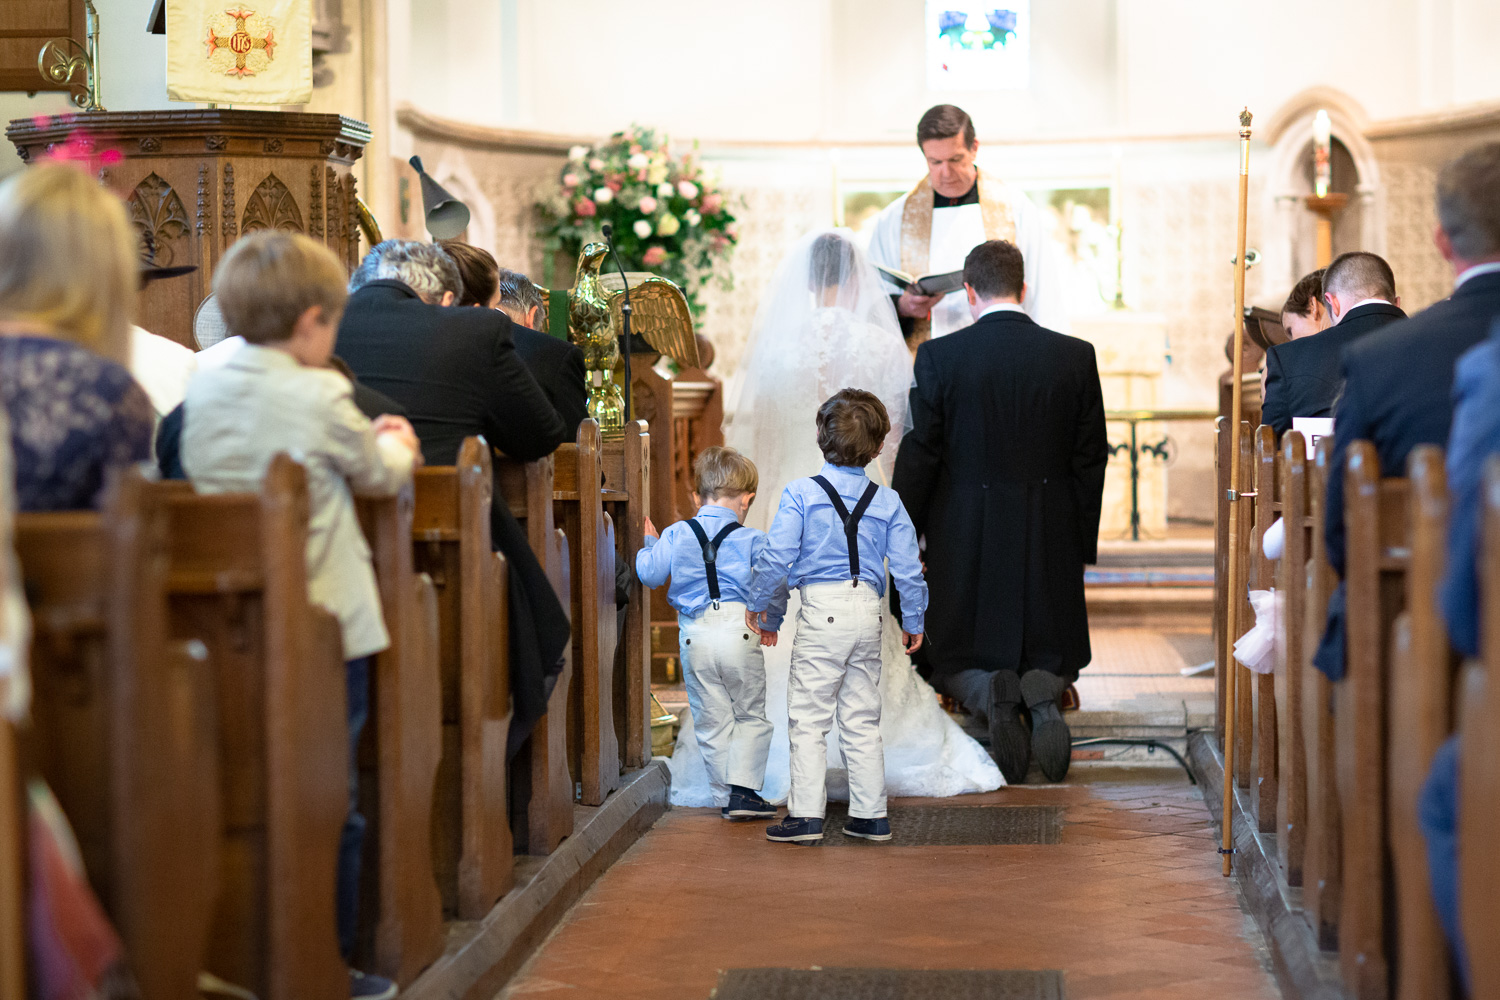 Reportage wedding photography wedding vows in church